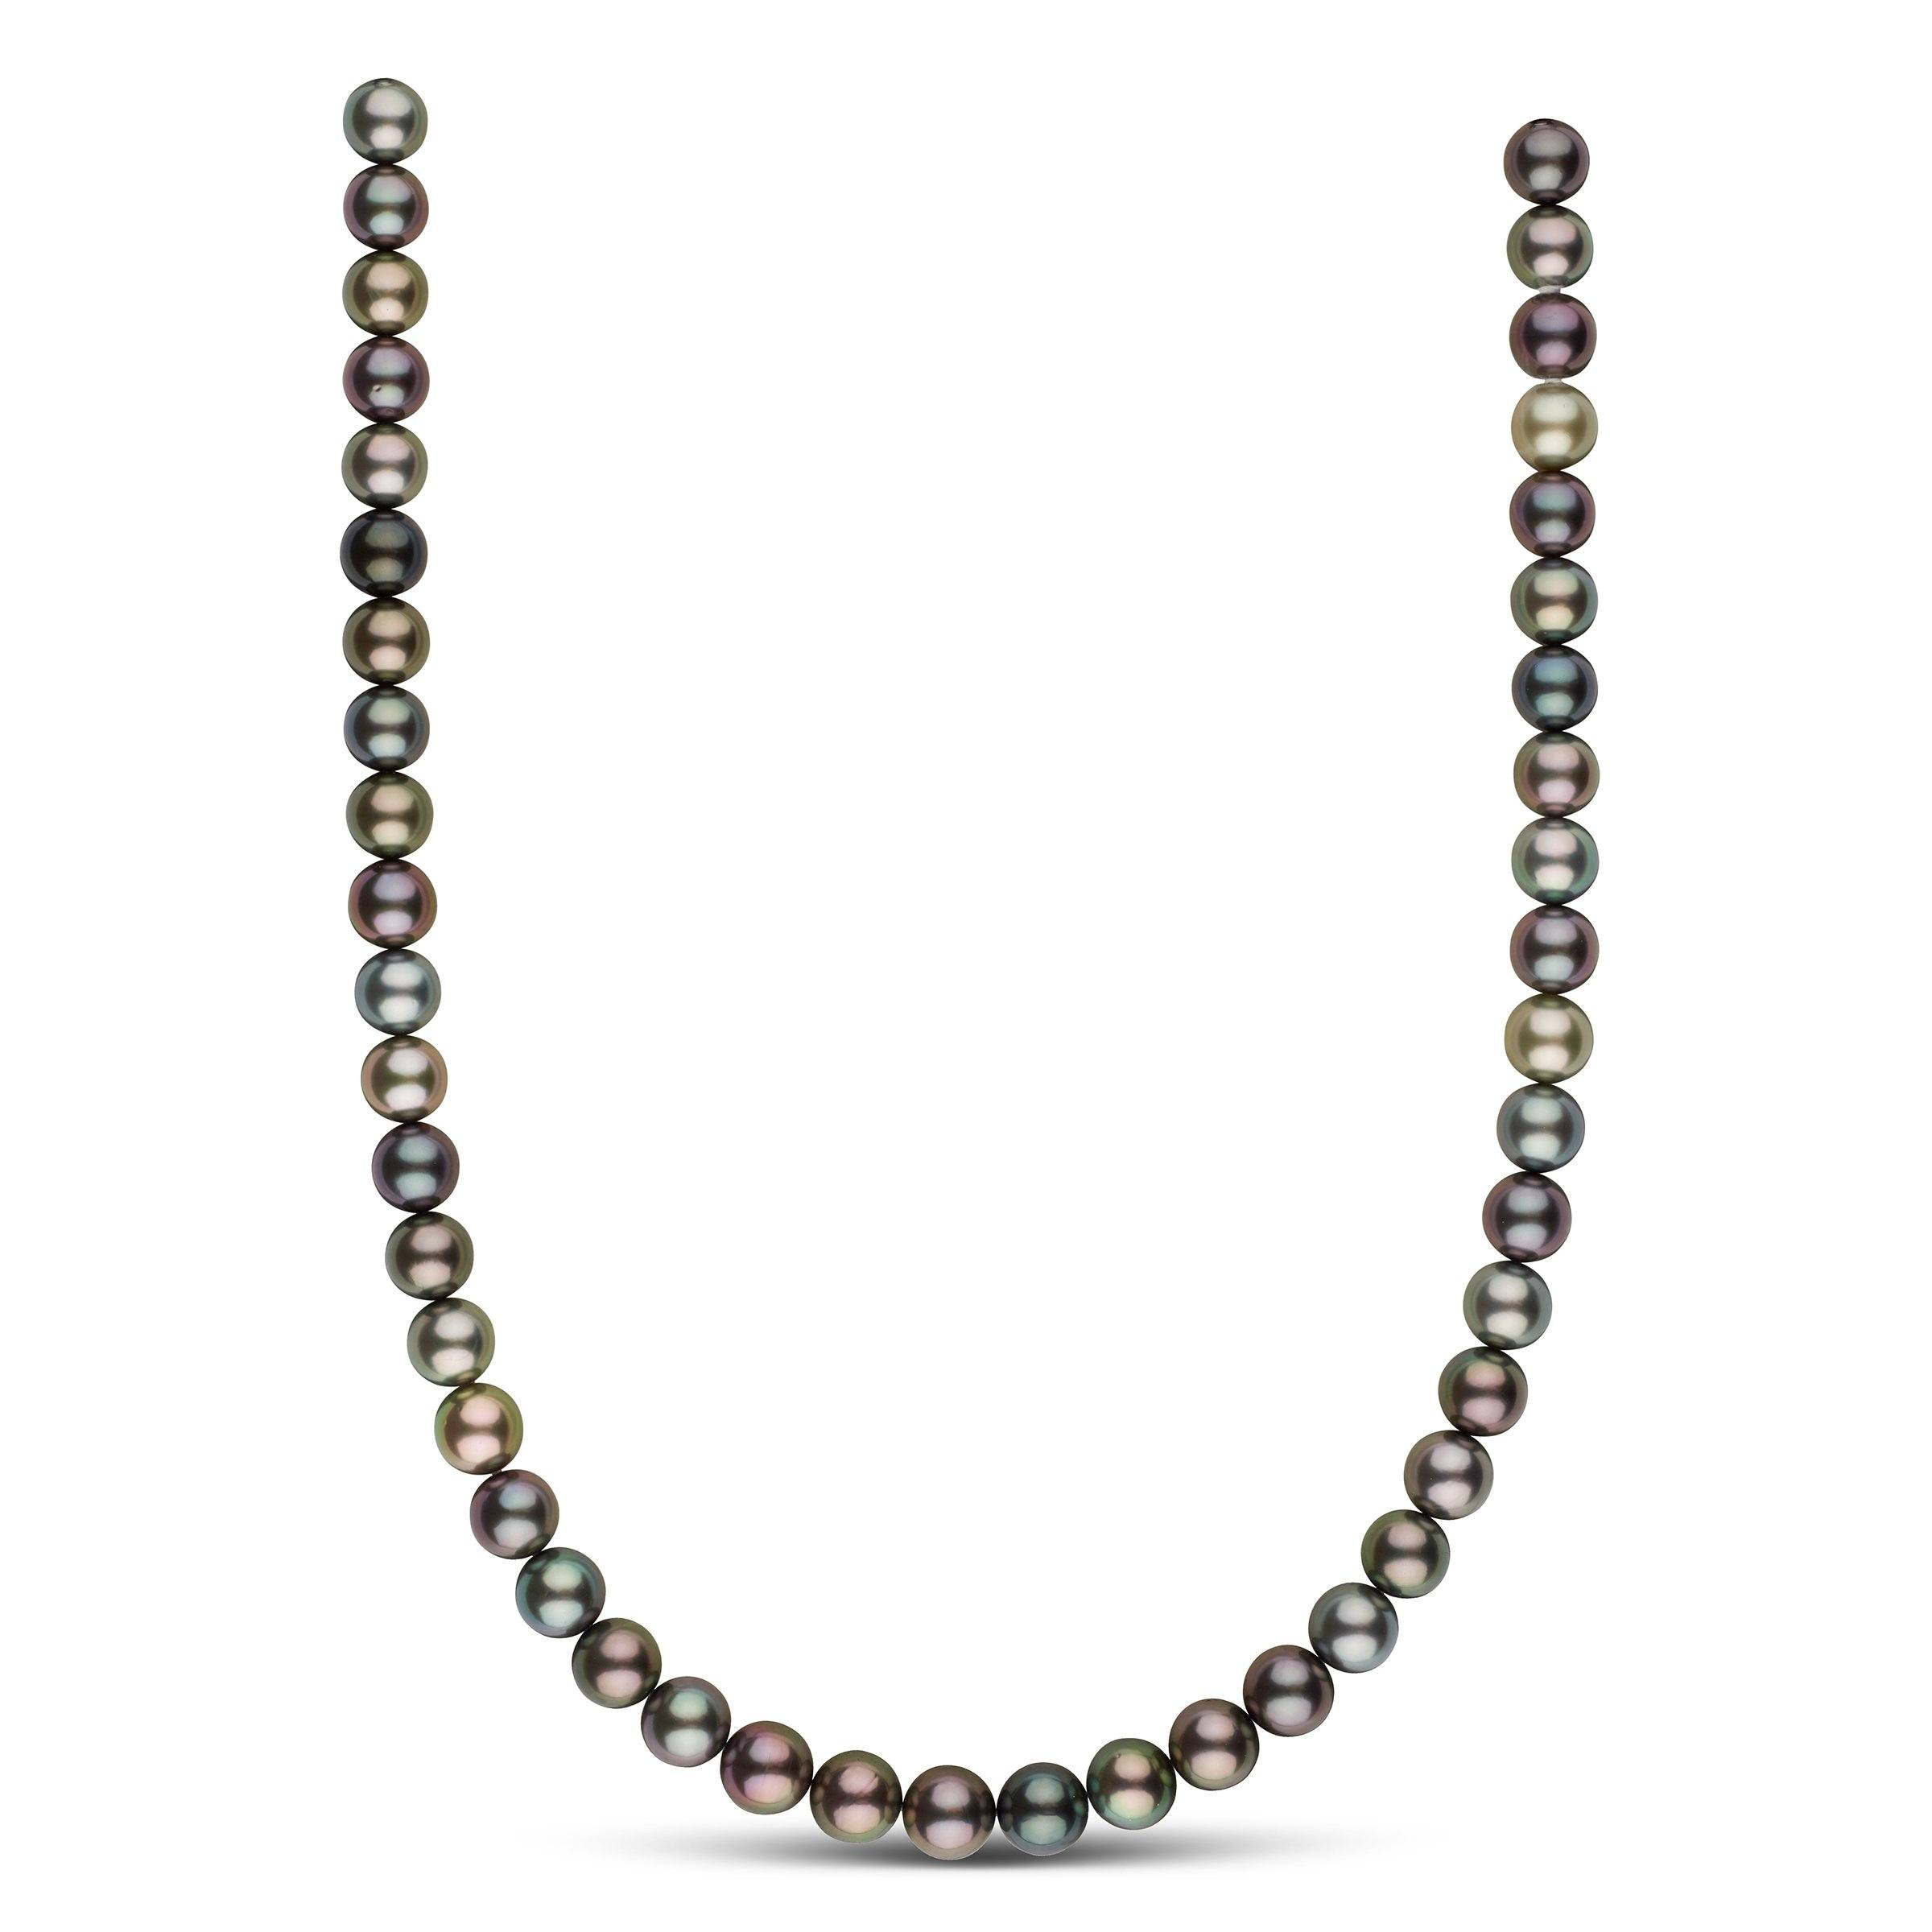 9.0-9.8 mm AA+/AAA Tahitian Round Pearl Necklace